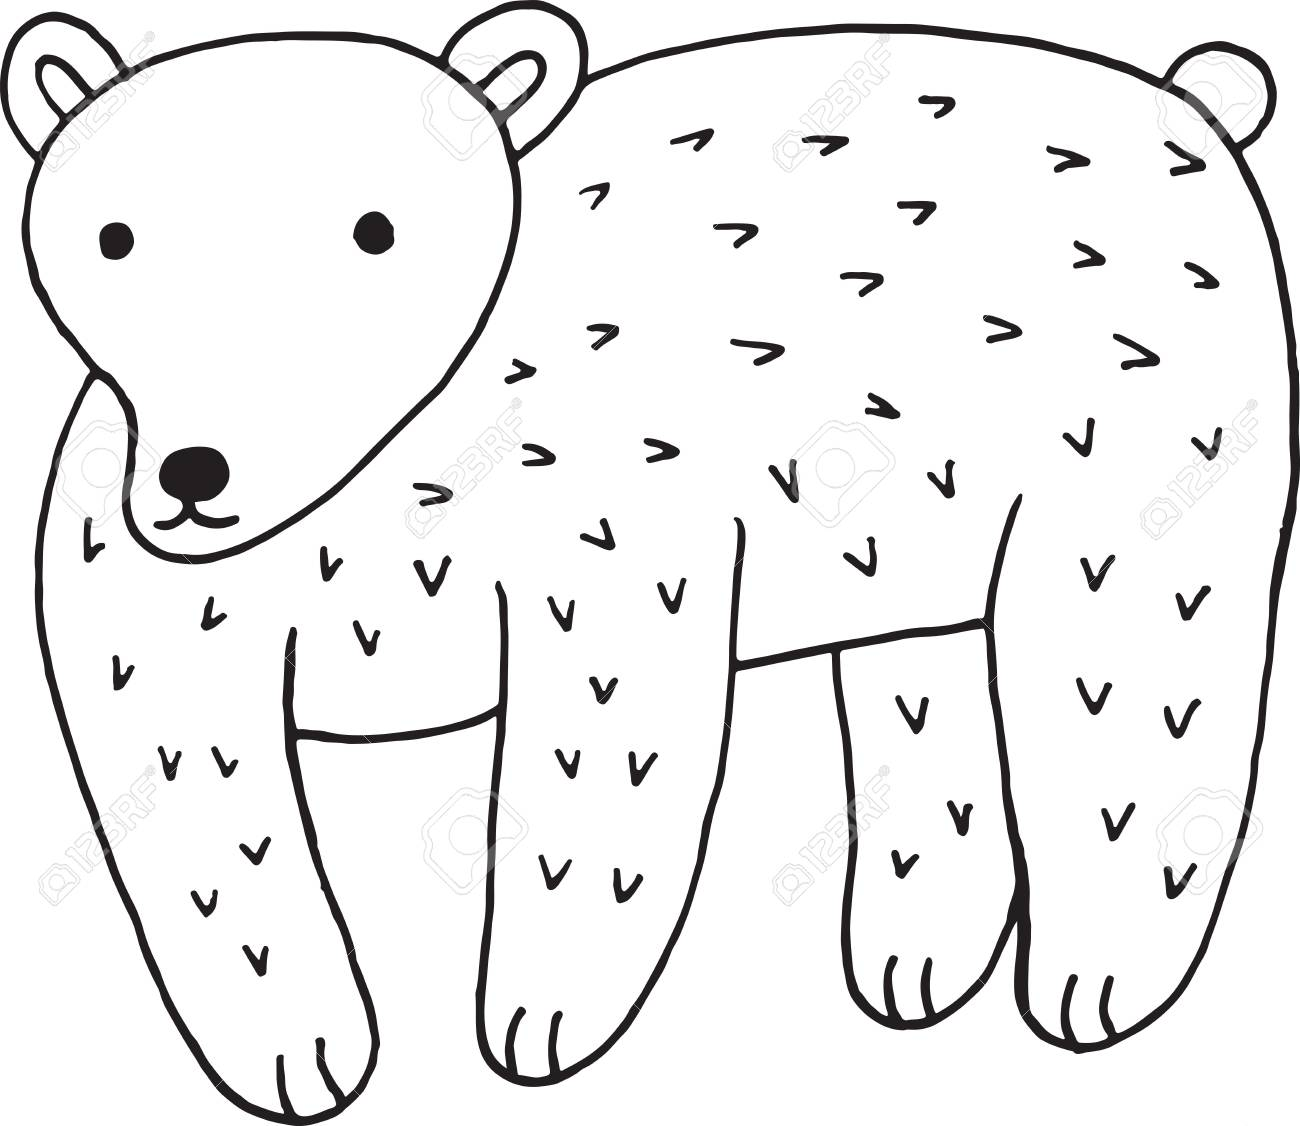 Coloriage Animaux Simple.Ours Animal Foret Doodle Ours Dessin A La Main Simple Style Coloriage Dessin A La Main Coloriage